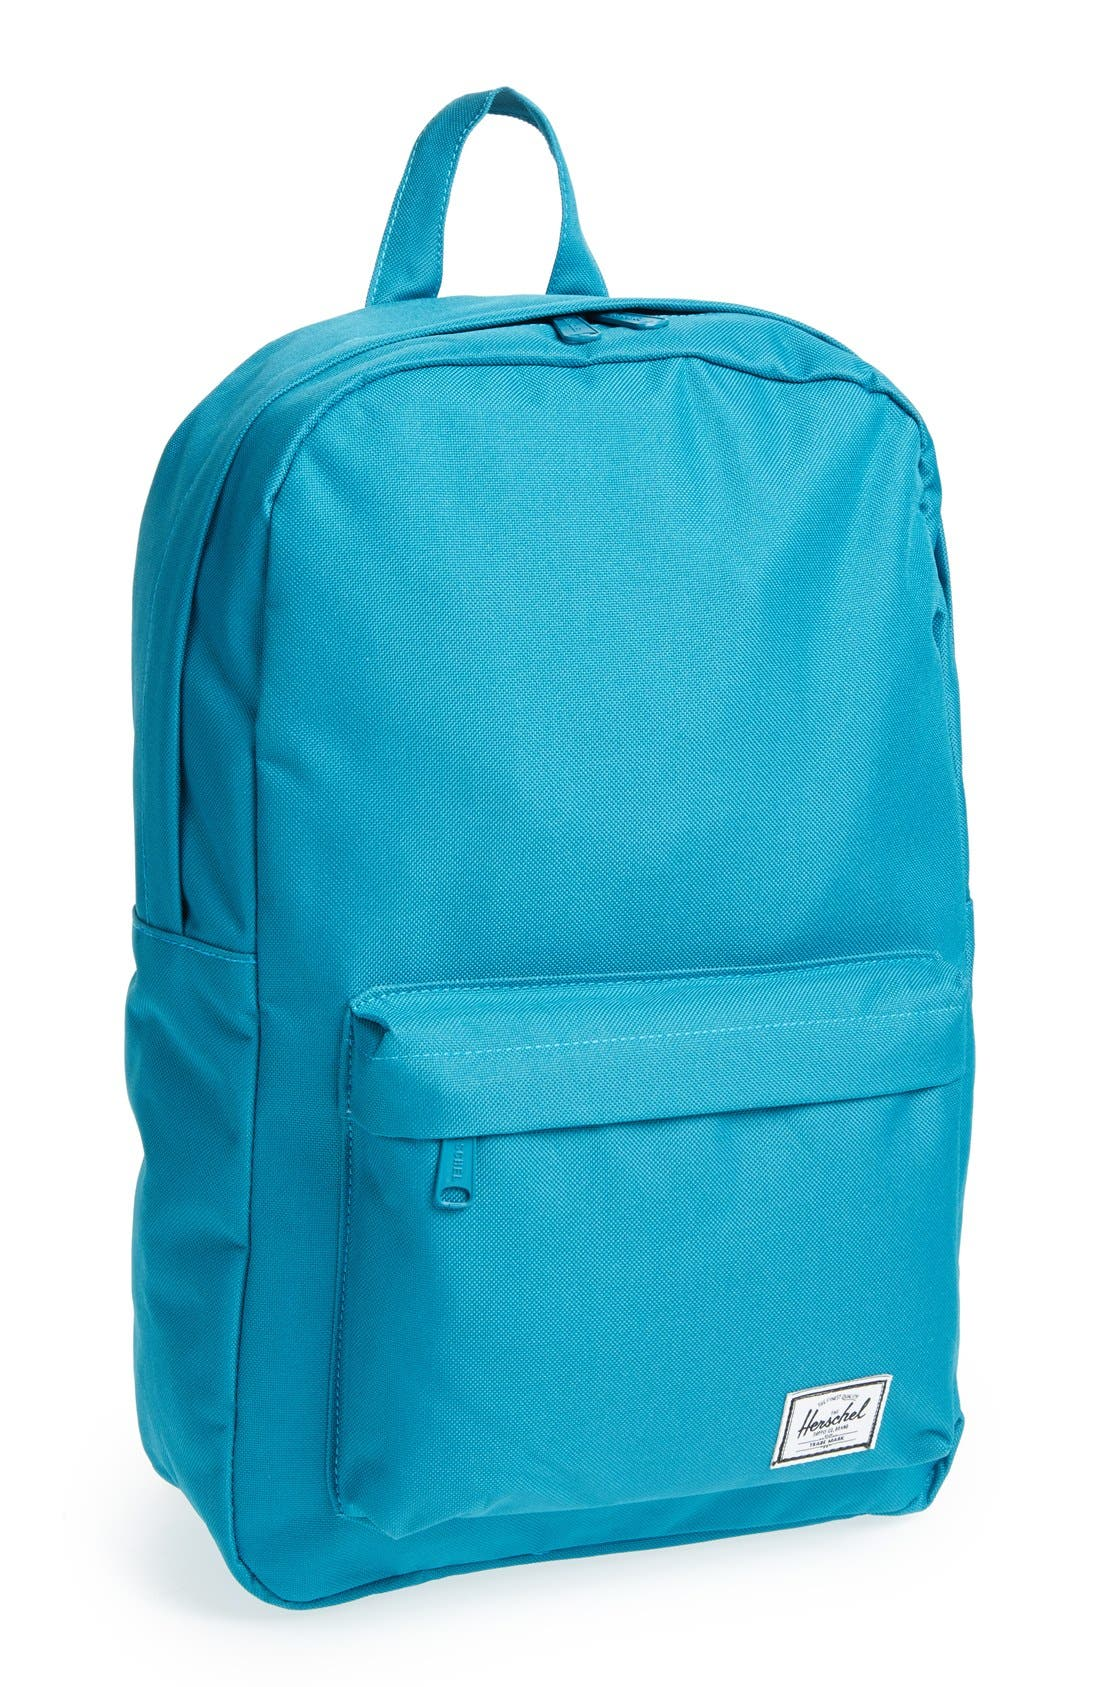 Alternate Image 1 Selected - Herschel Supply Co. 'Classic Mid-Volume' Backpack